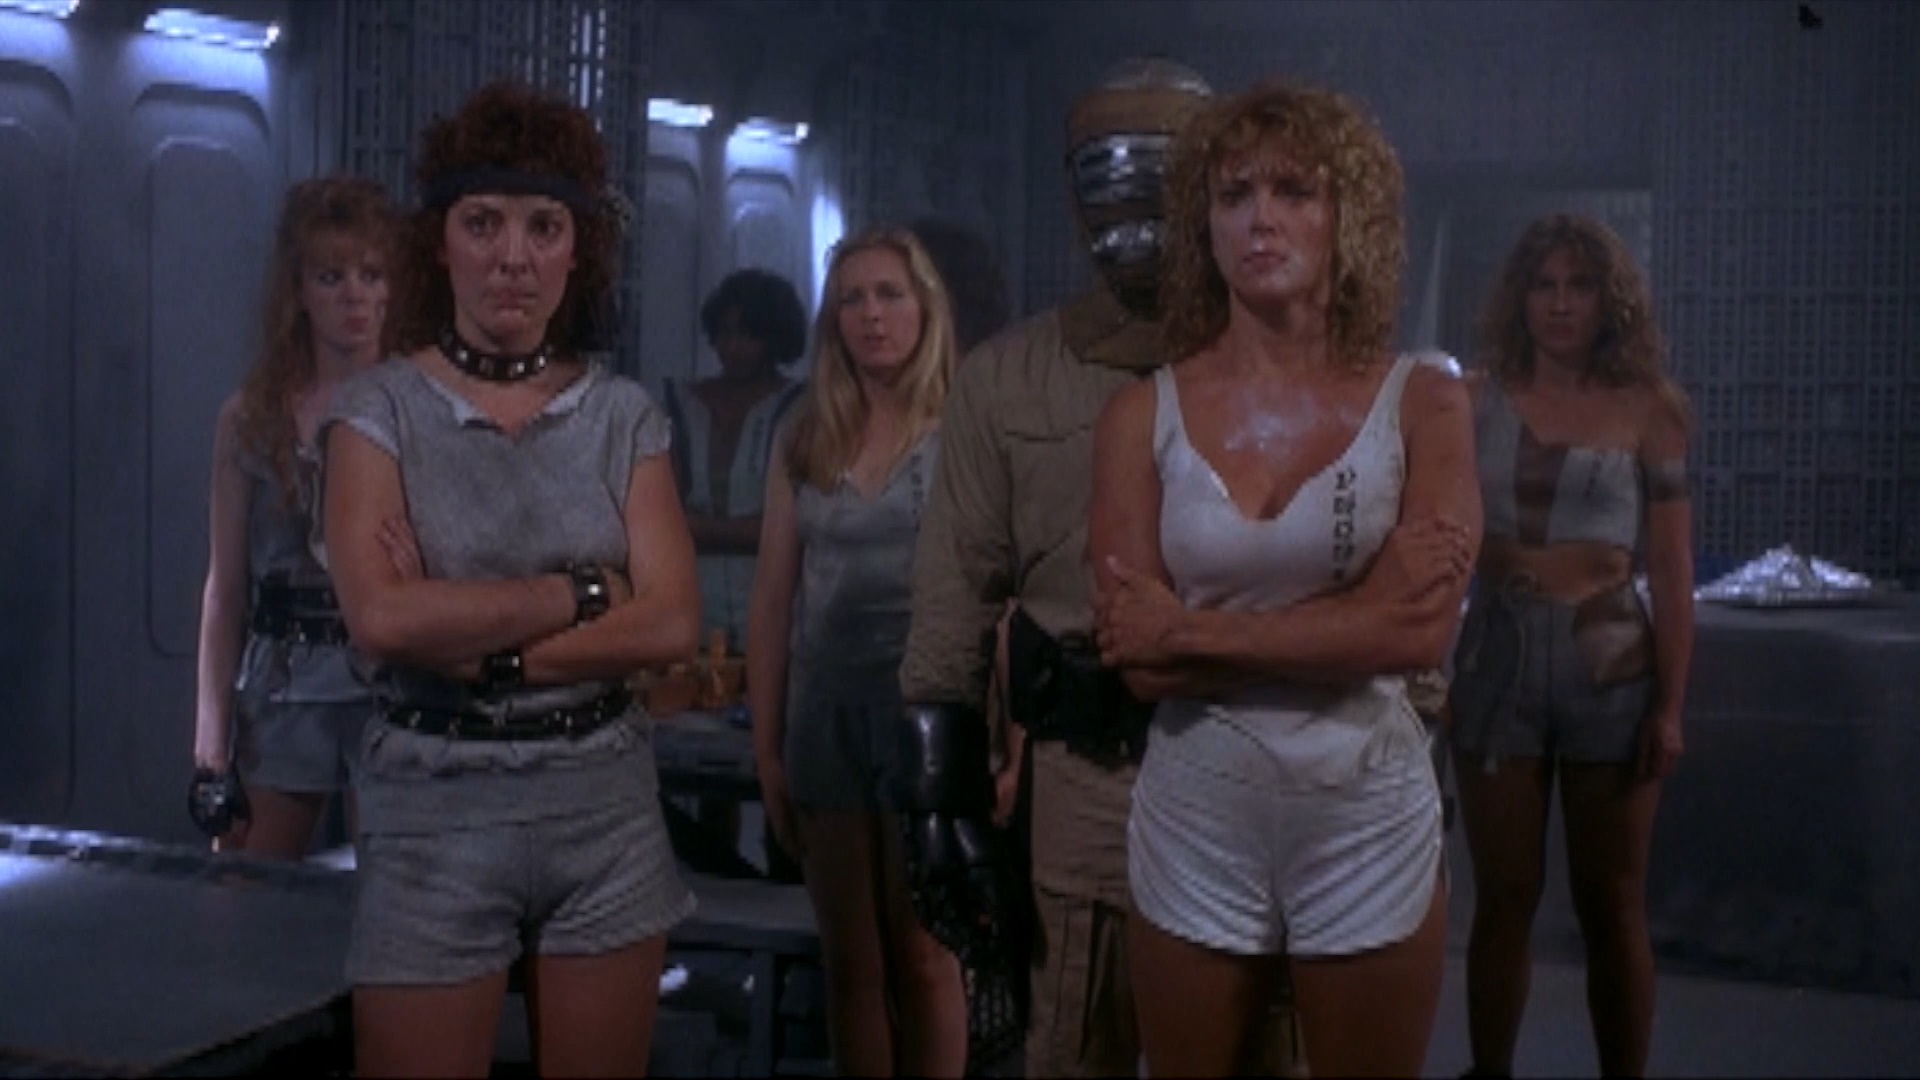 Susan Stokey, Sandy Brooke in The Adventures of Taura: Prison Ship Star Slammer (1986) 4